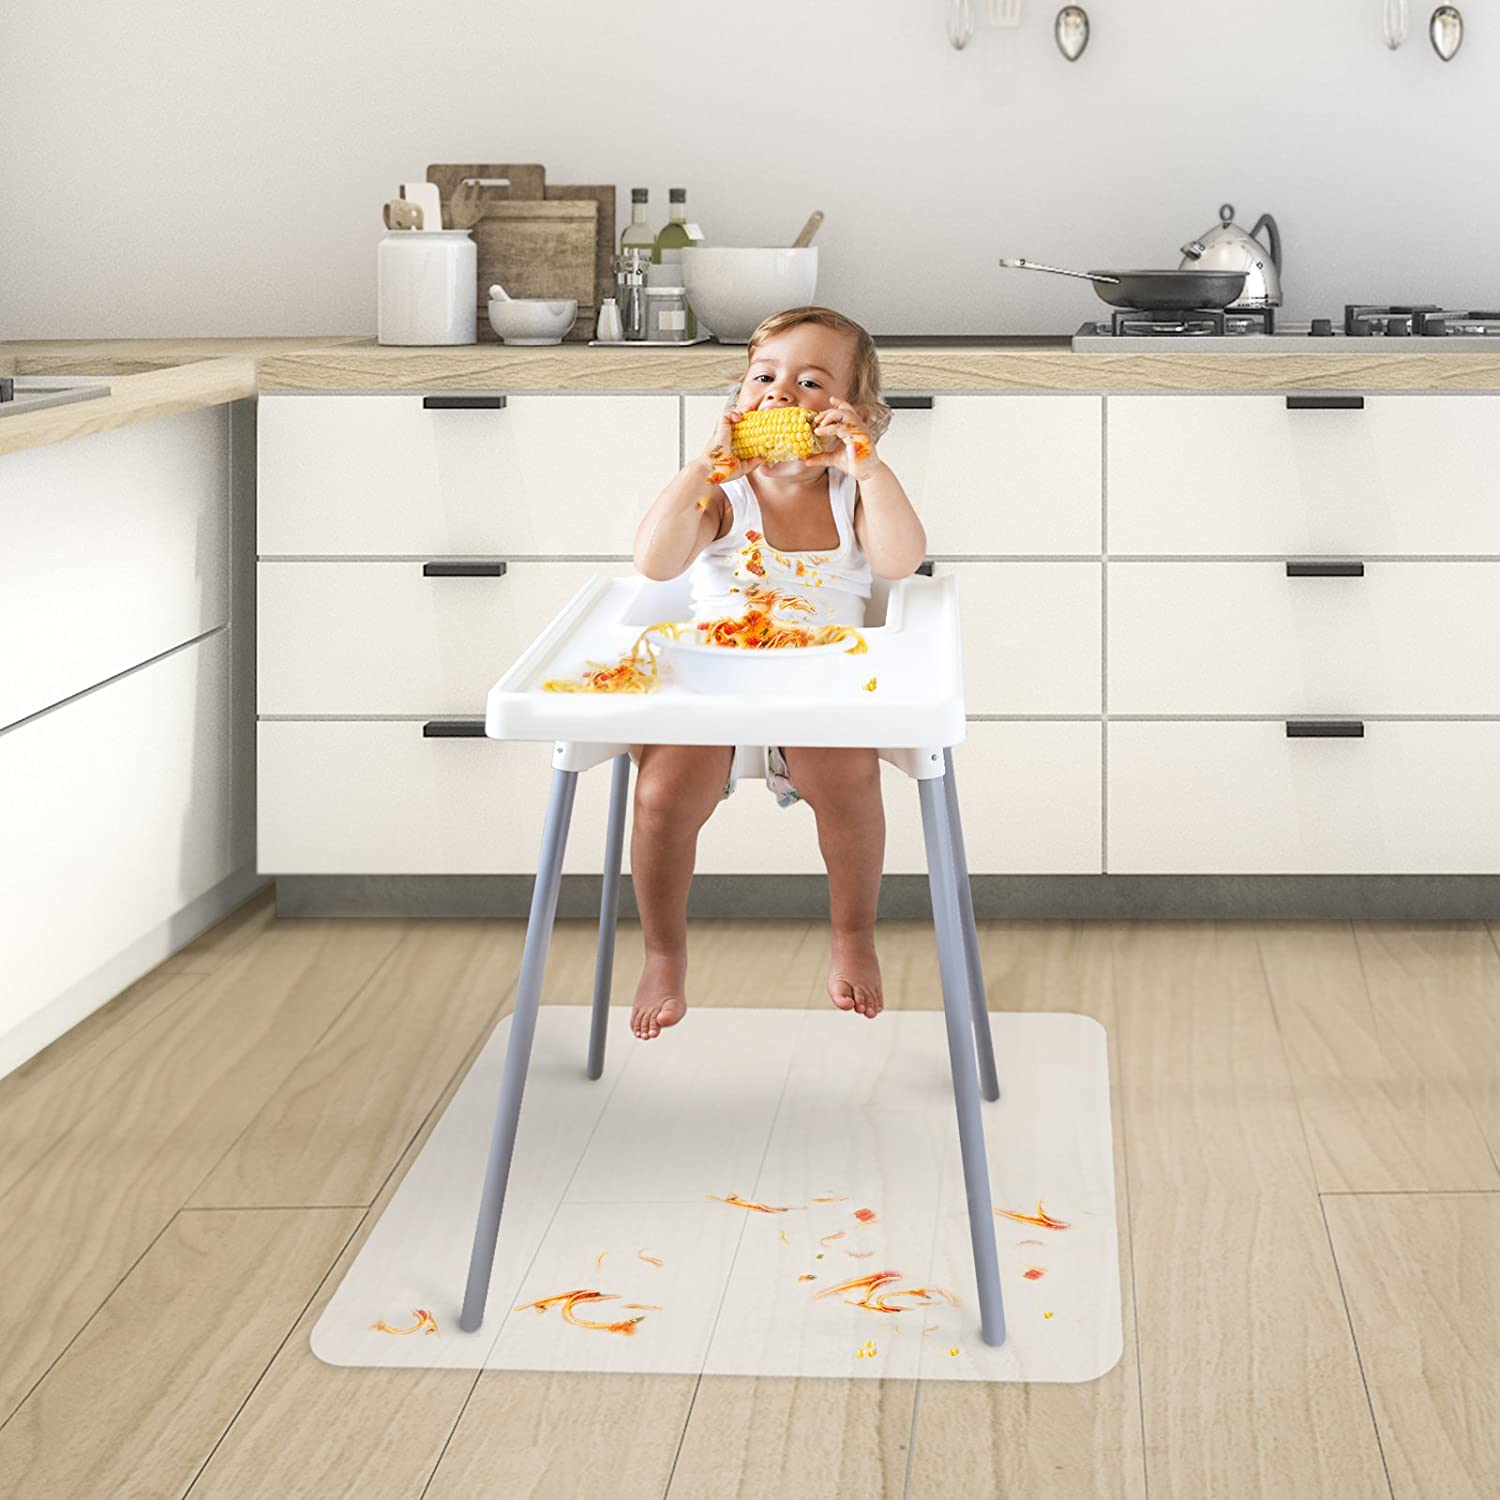 Chair Mat for Baby High Chair | Opaque Child Floor, Feeding and Play Mat | BPA, Phthalate and Odor Free |36' x 36' Phthalate and Odor Free |36 x 36 Office Marshal 4058171344092